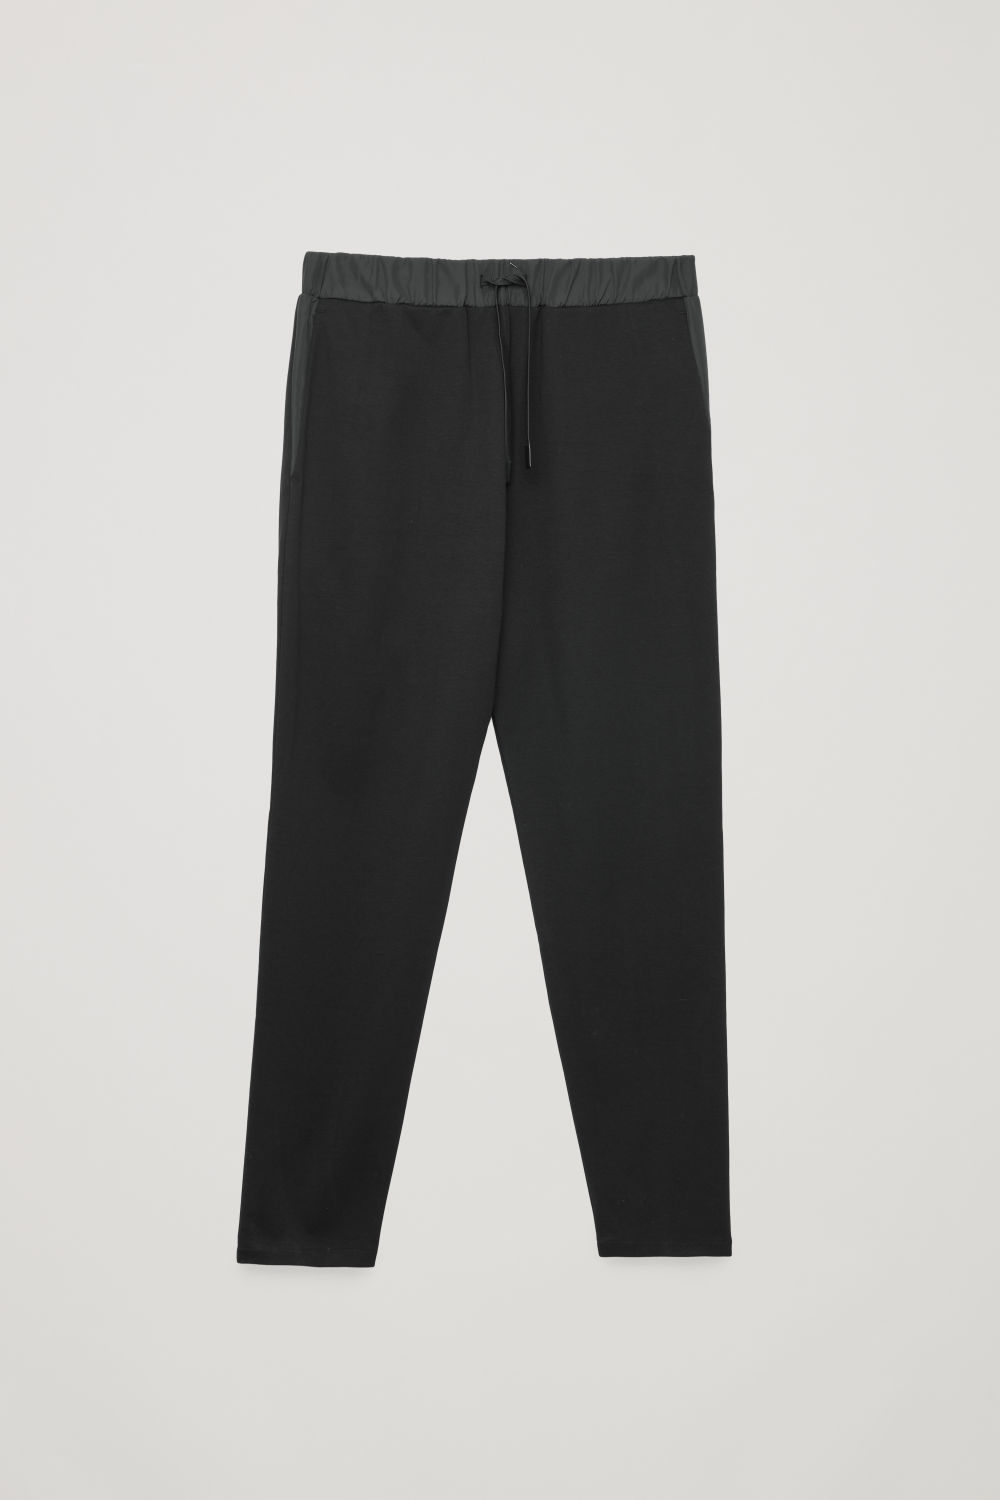 NYLON-DETAIL JERSEY TROUSERS